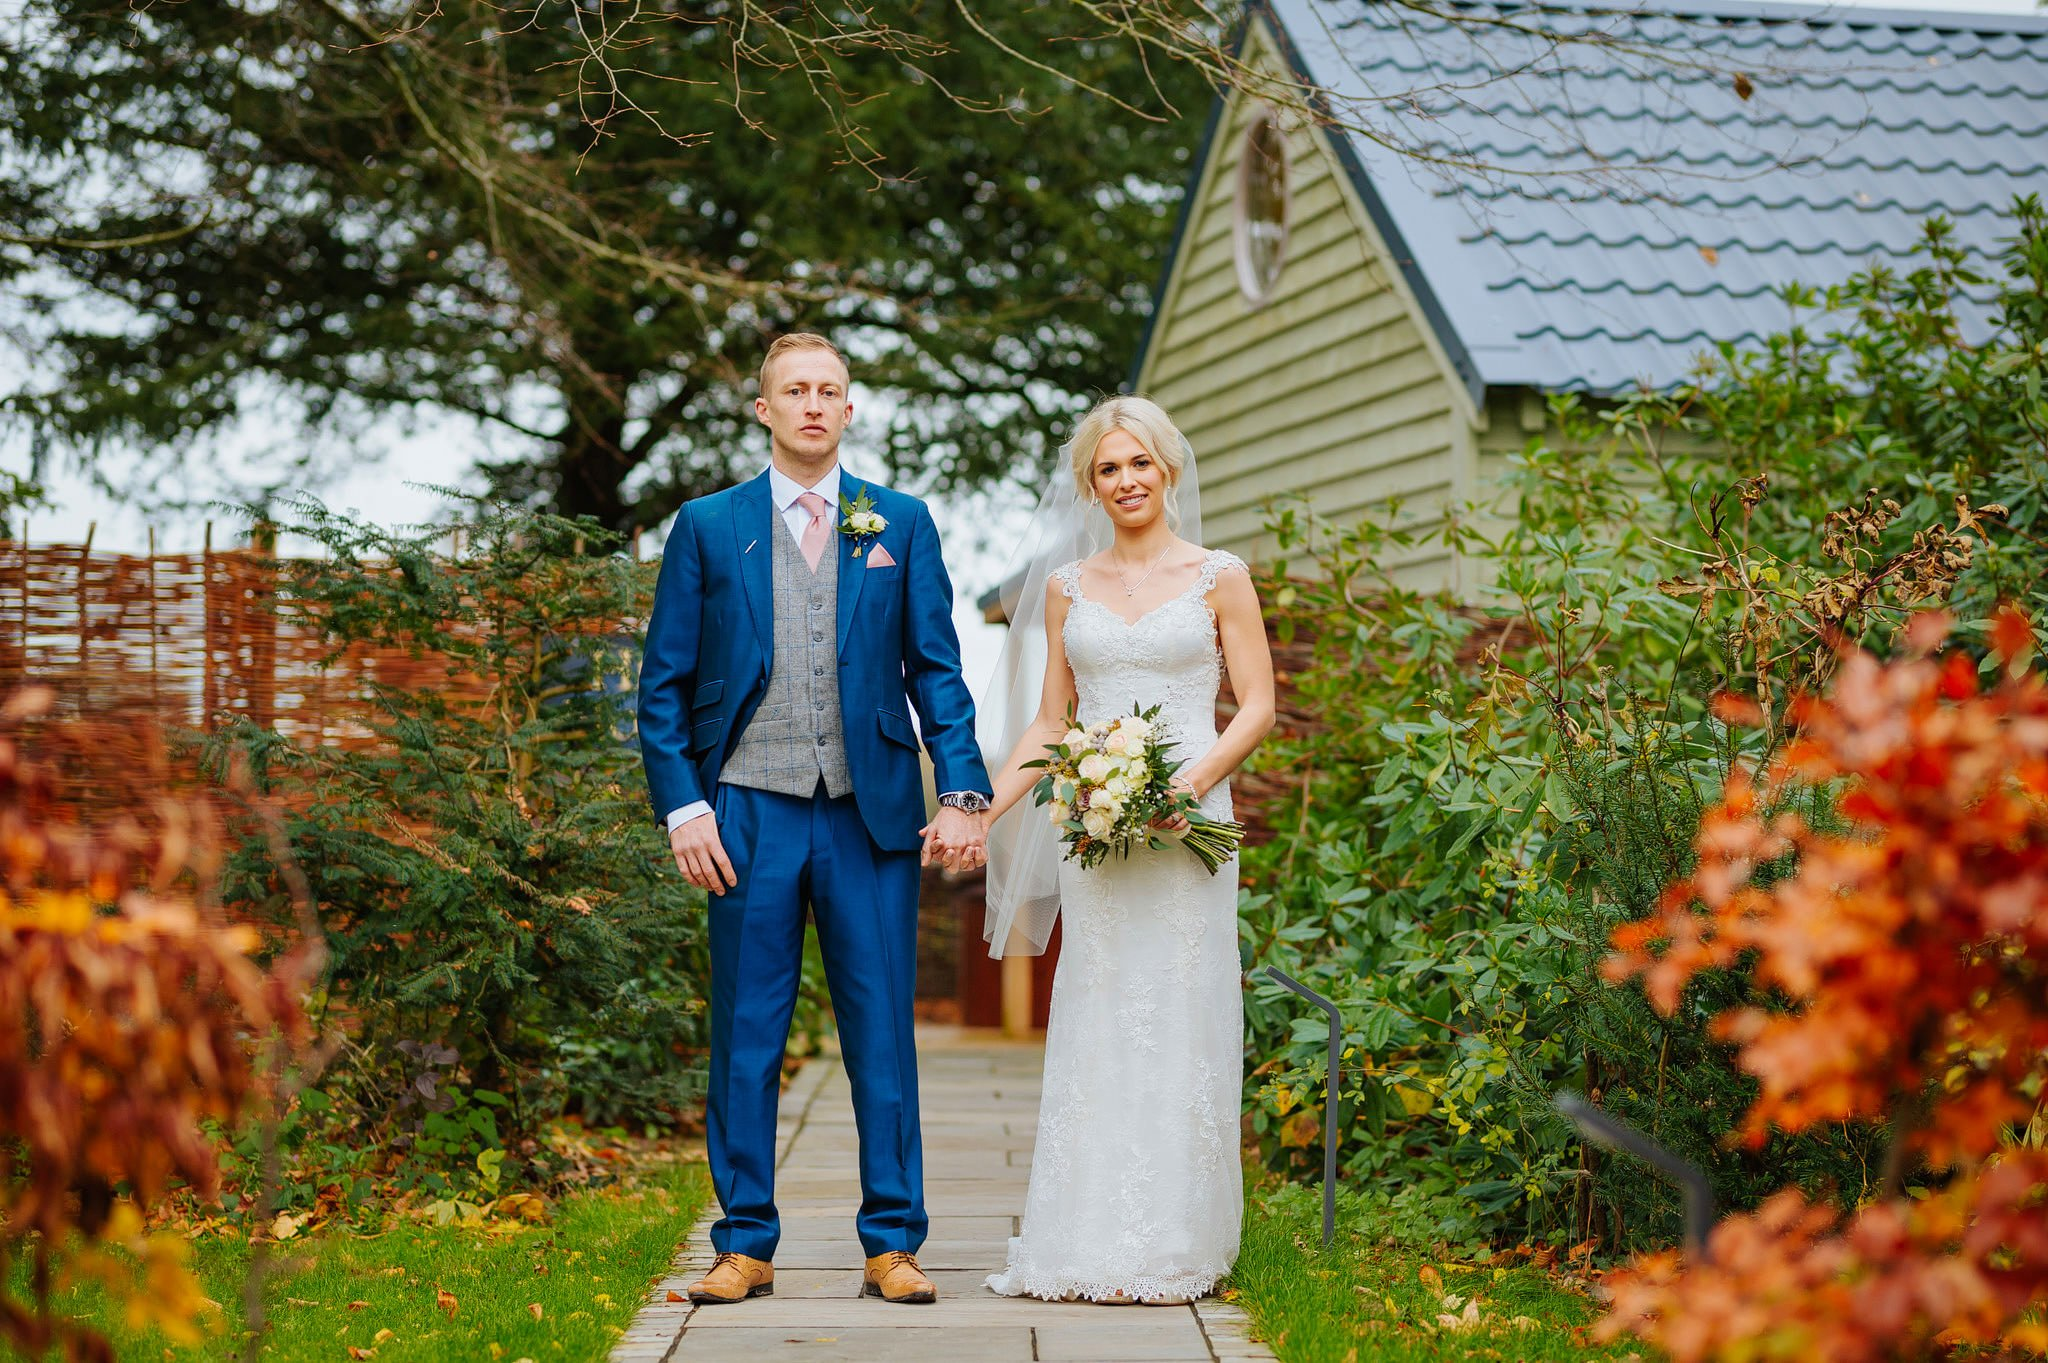 Sigma 85mm F1.4 ART review vs Wedding Photography 11